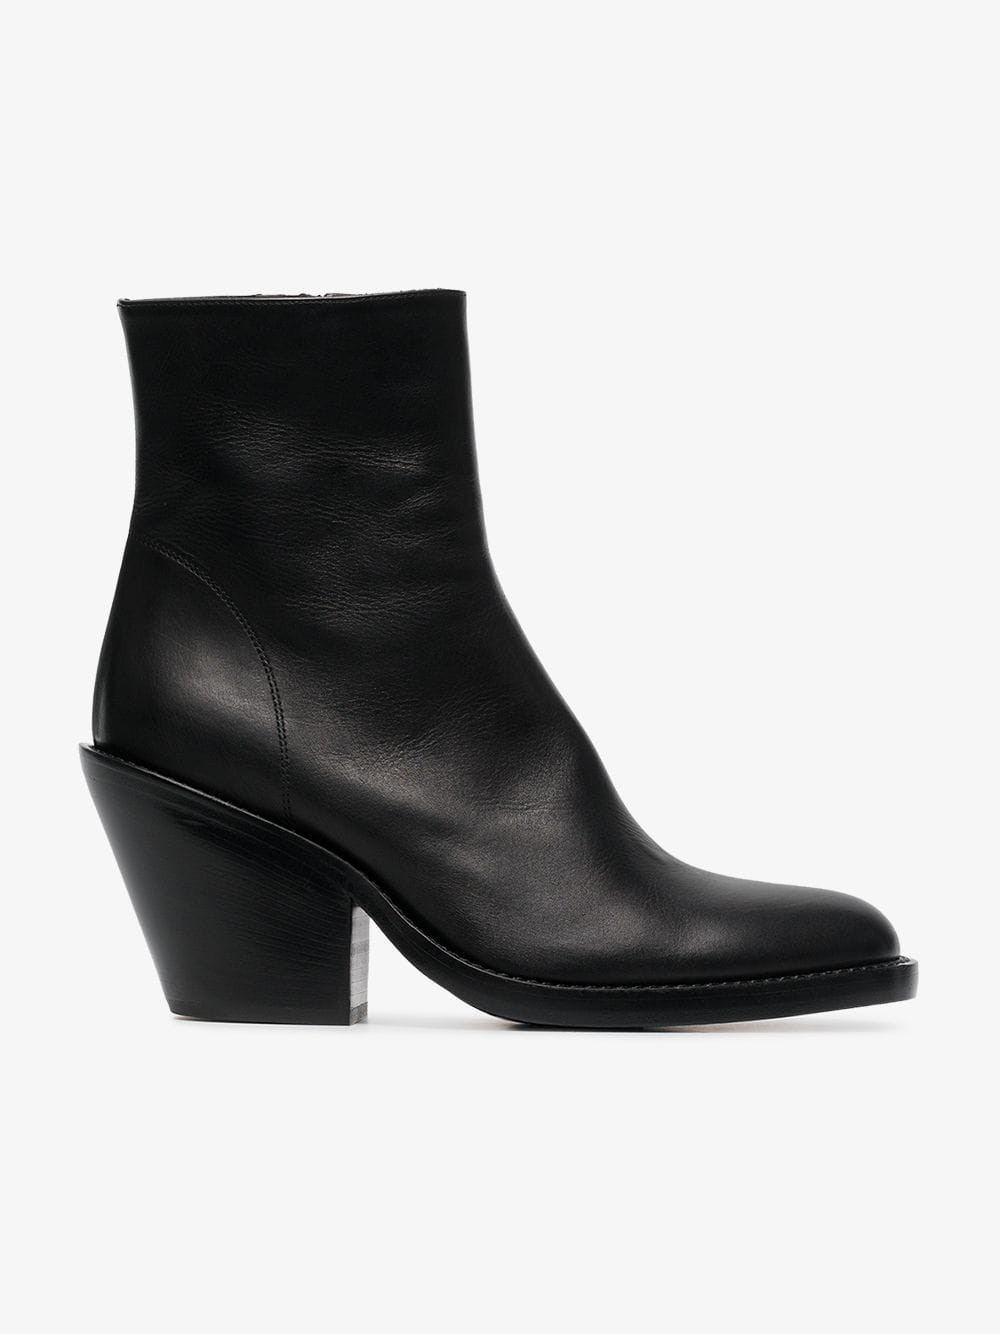 Ann Demeulemeester 80 Leather Ankle Boots in black